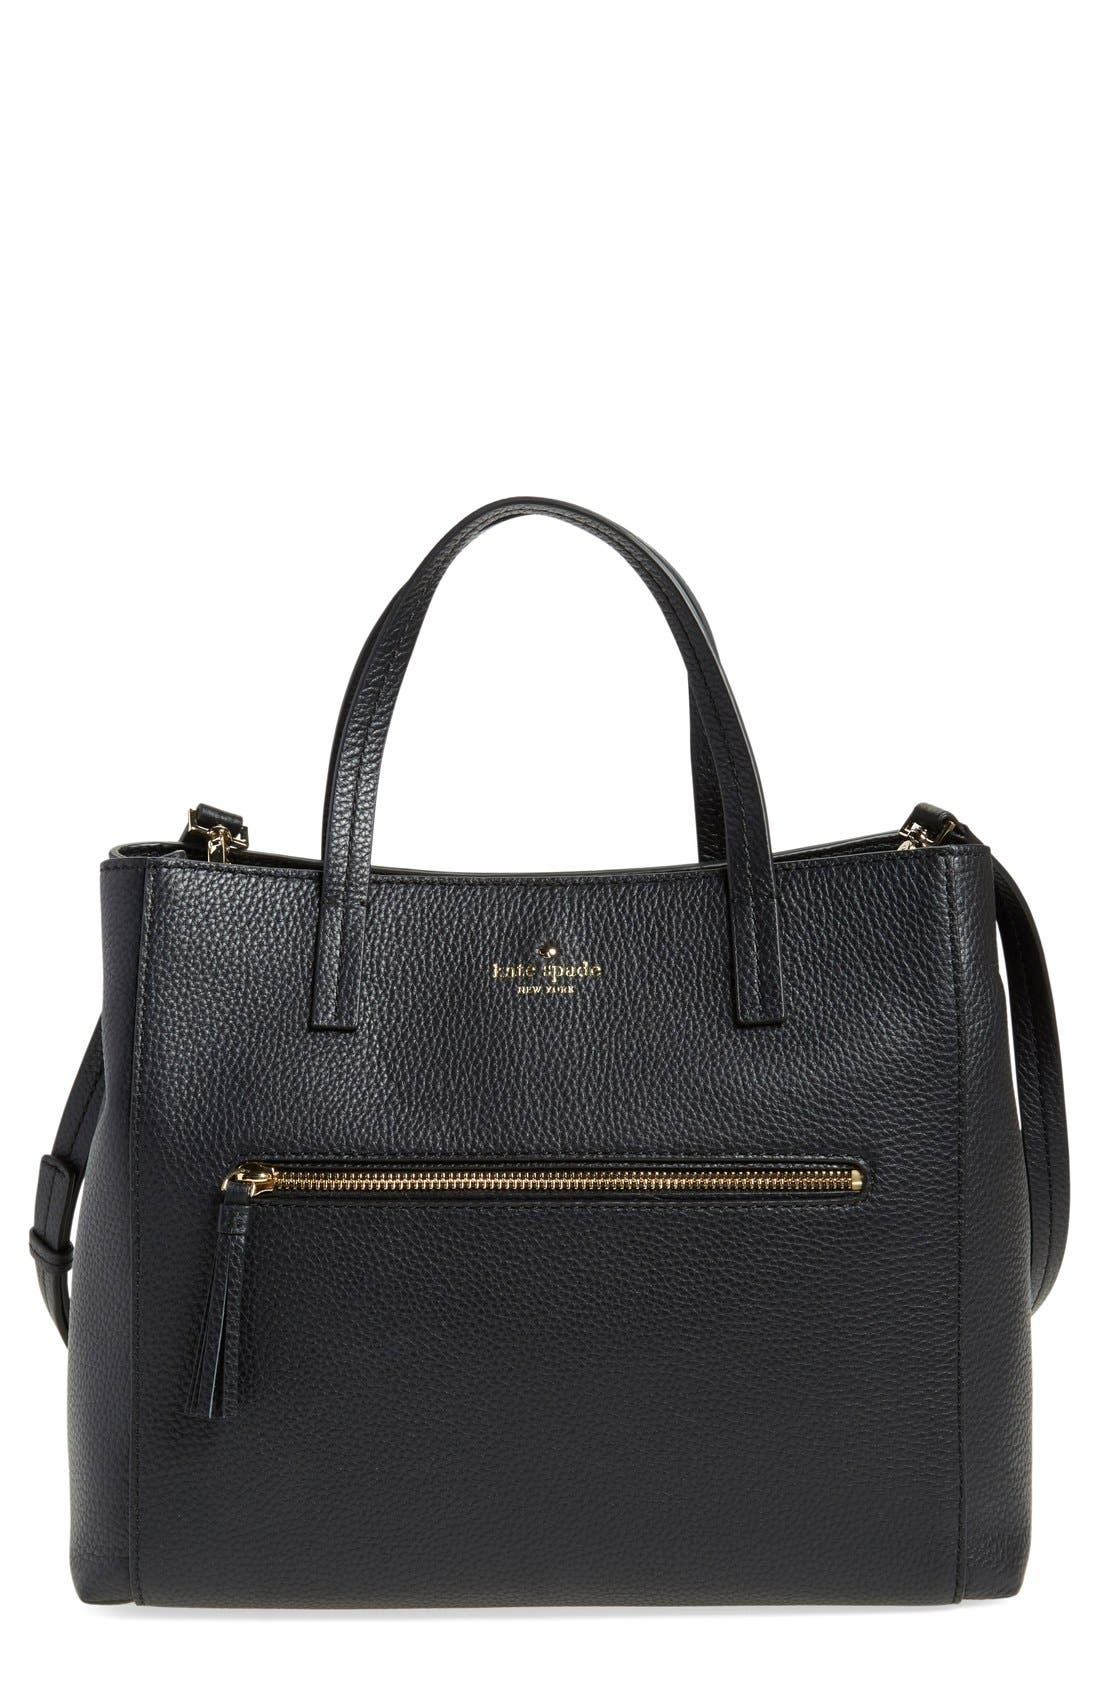 Main Image - kate spade new york 'spencer court - tera' leather satchel (Nordstrom Exclusive)